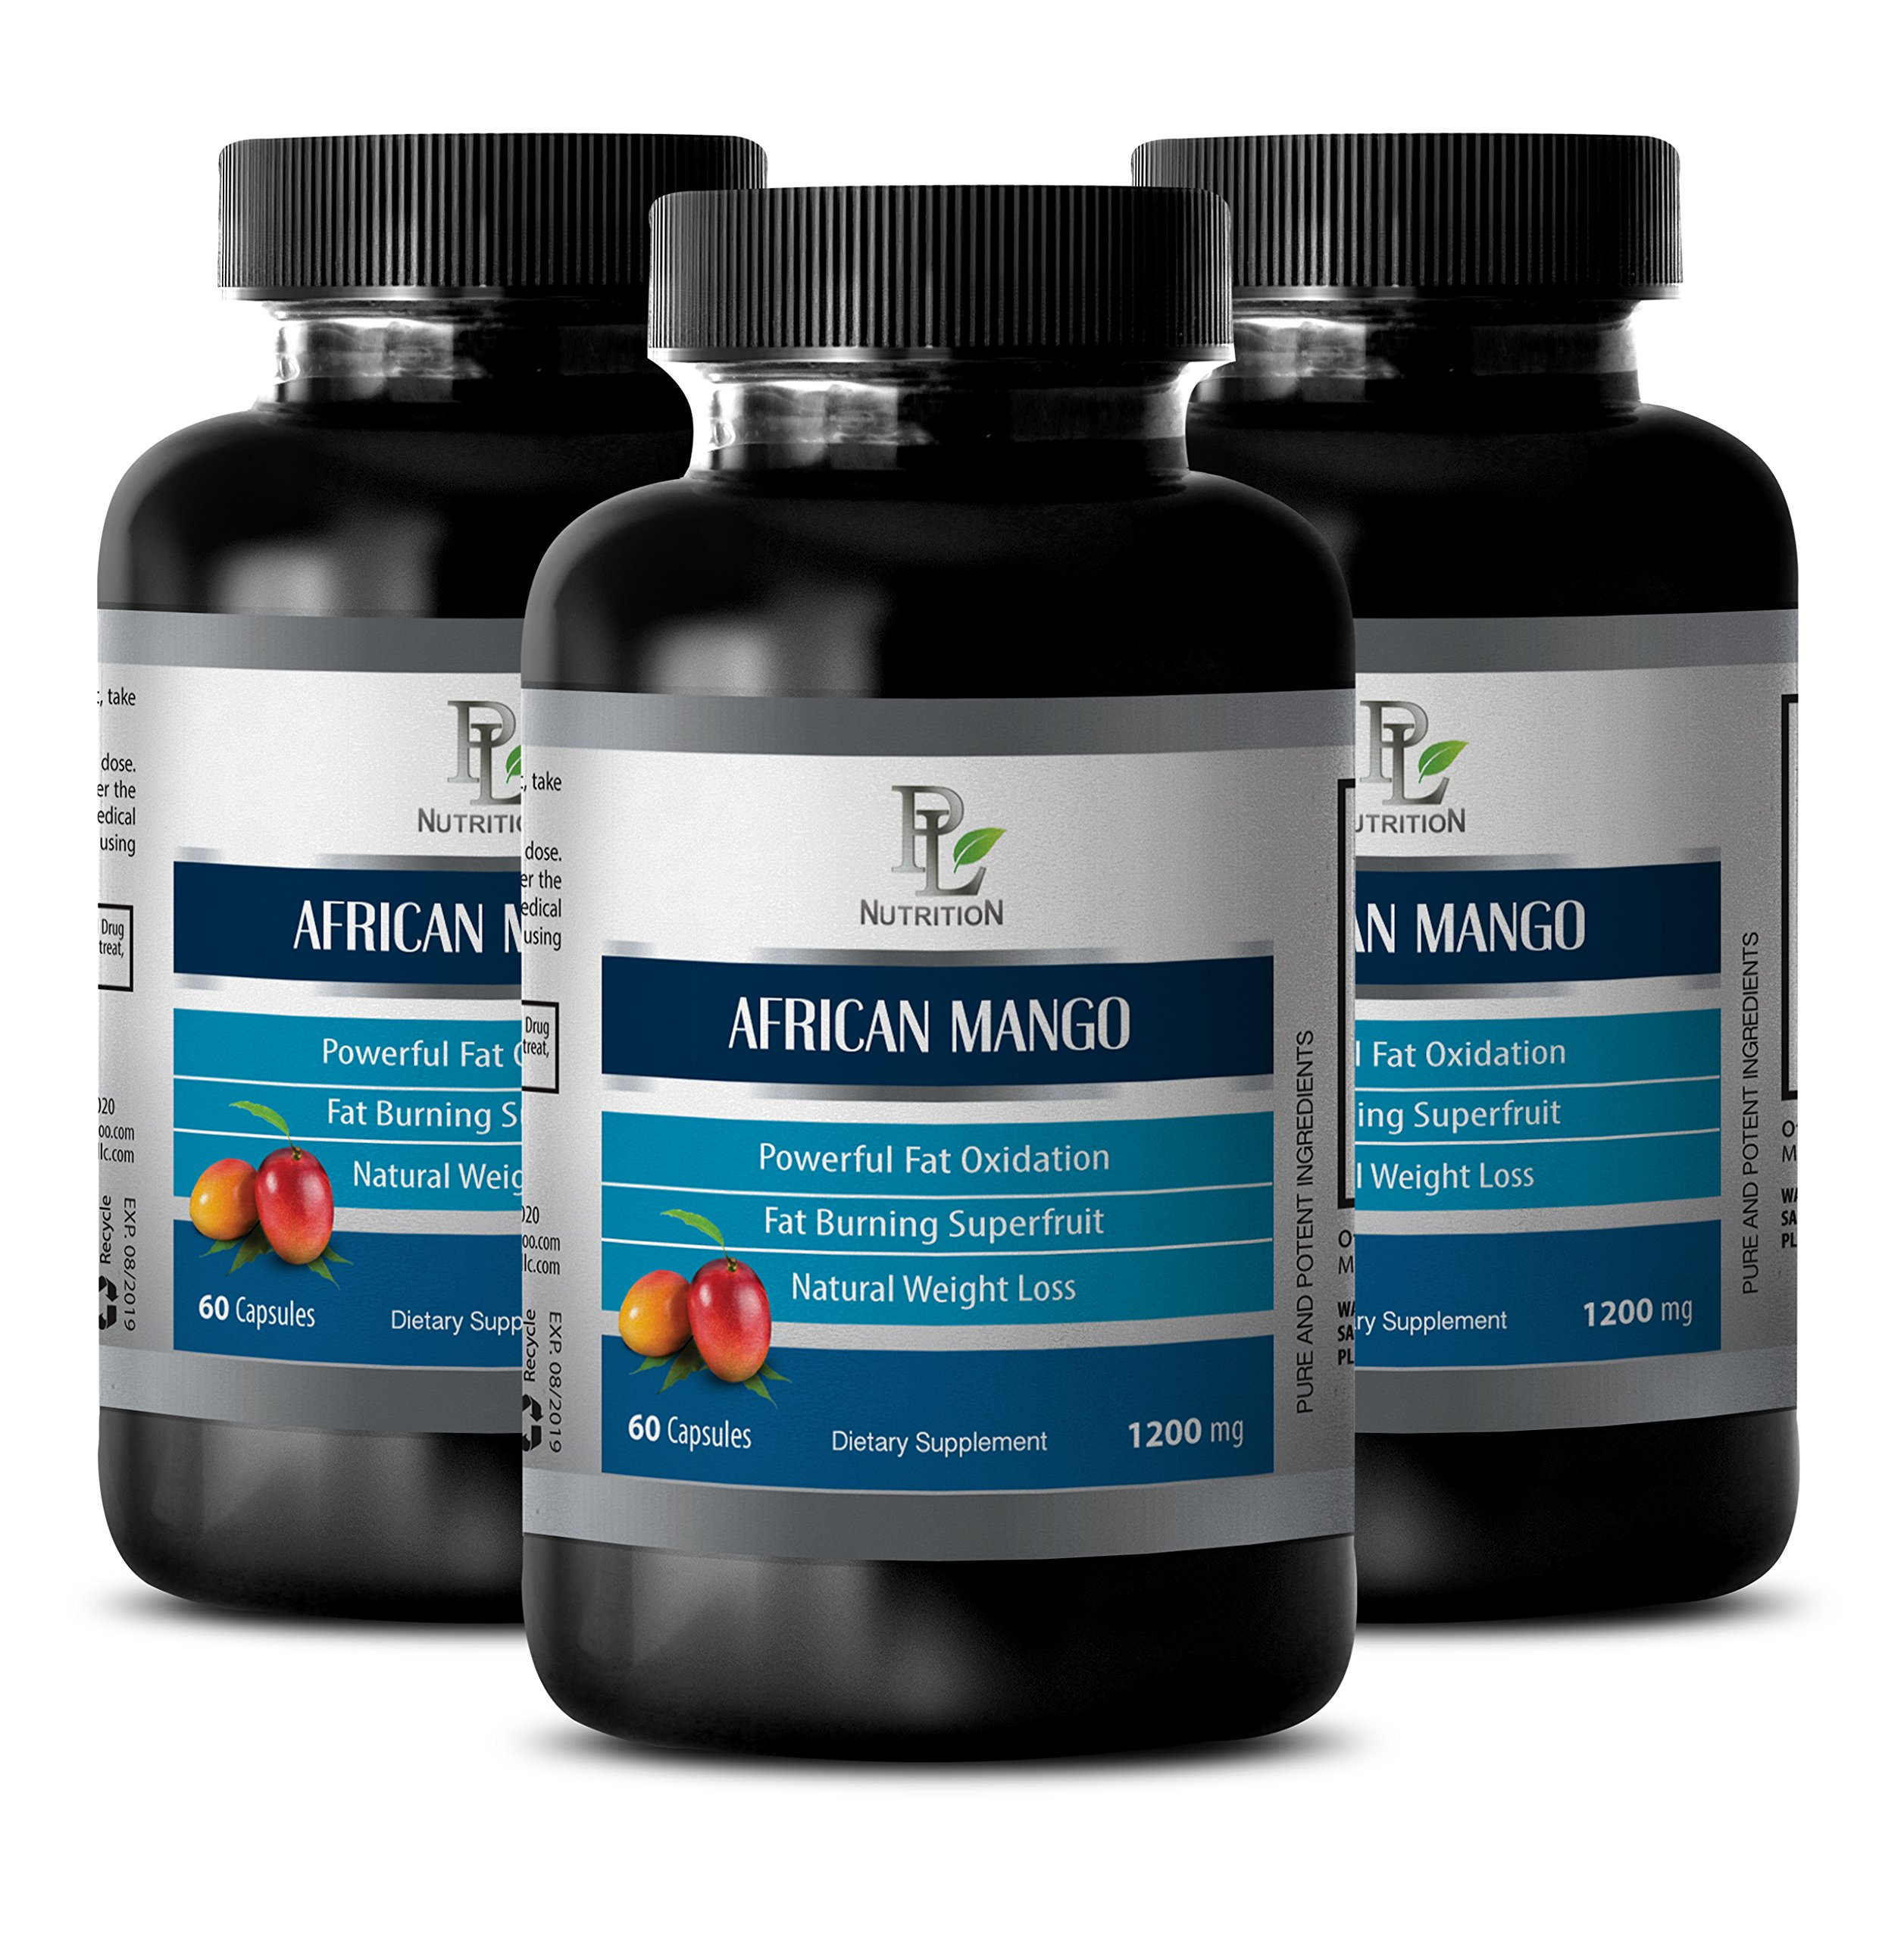 African mango diet - AFRICAN MANGO EXTRACT - Constipation relief - 3 Bottles 180 capsules by PL NUTRITION